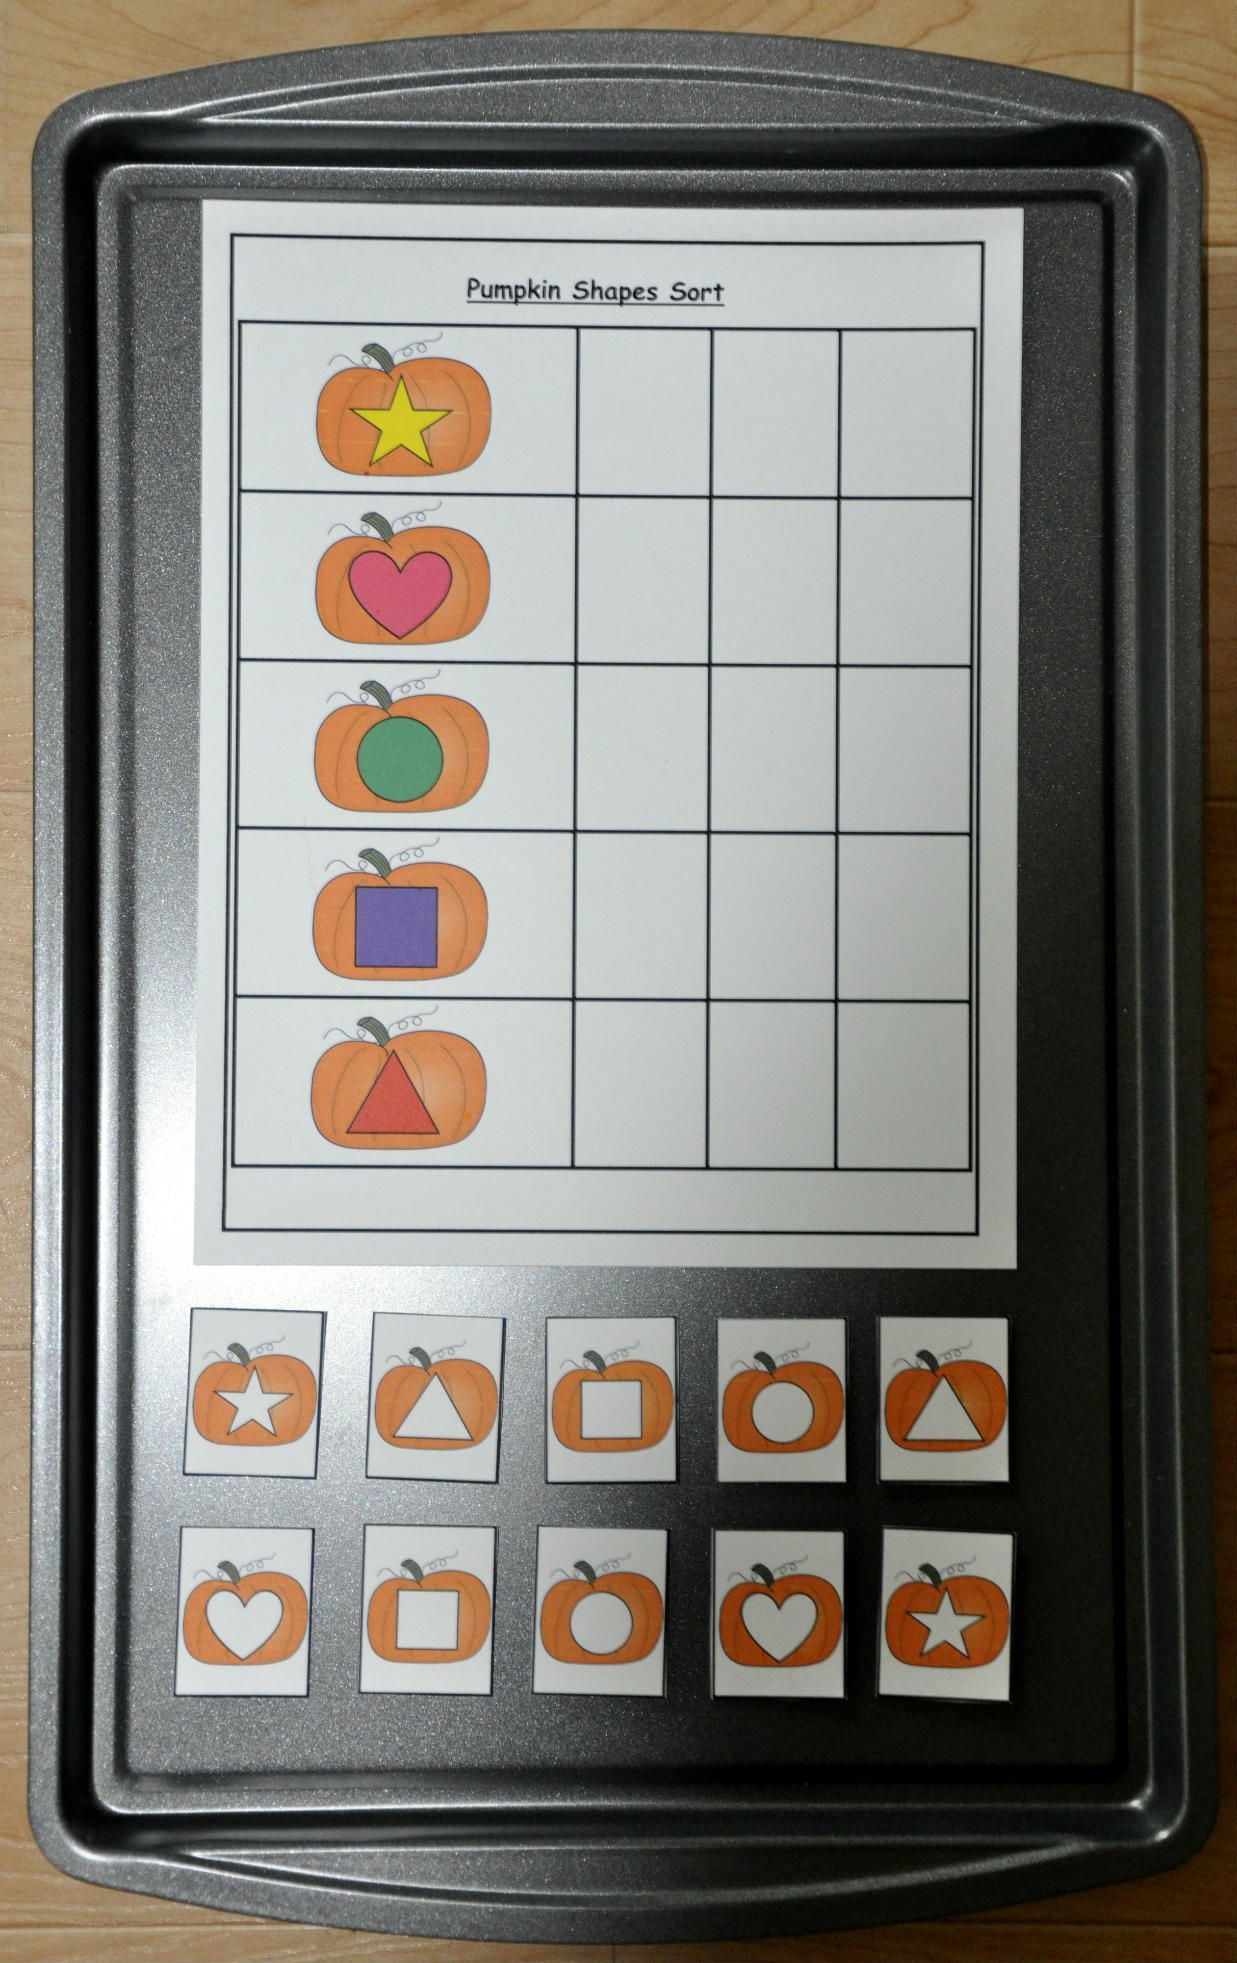 Pumpkin Shapes Sort Cookie Sheet Activity Students